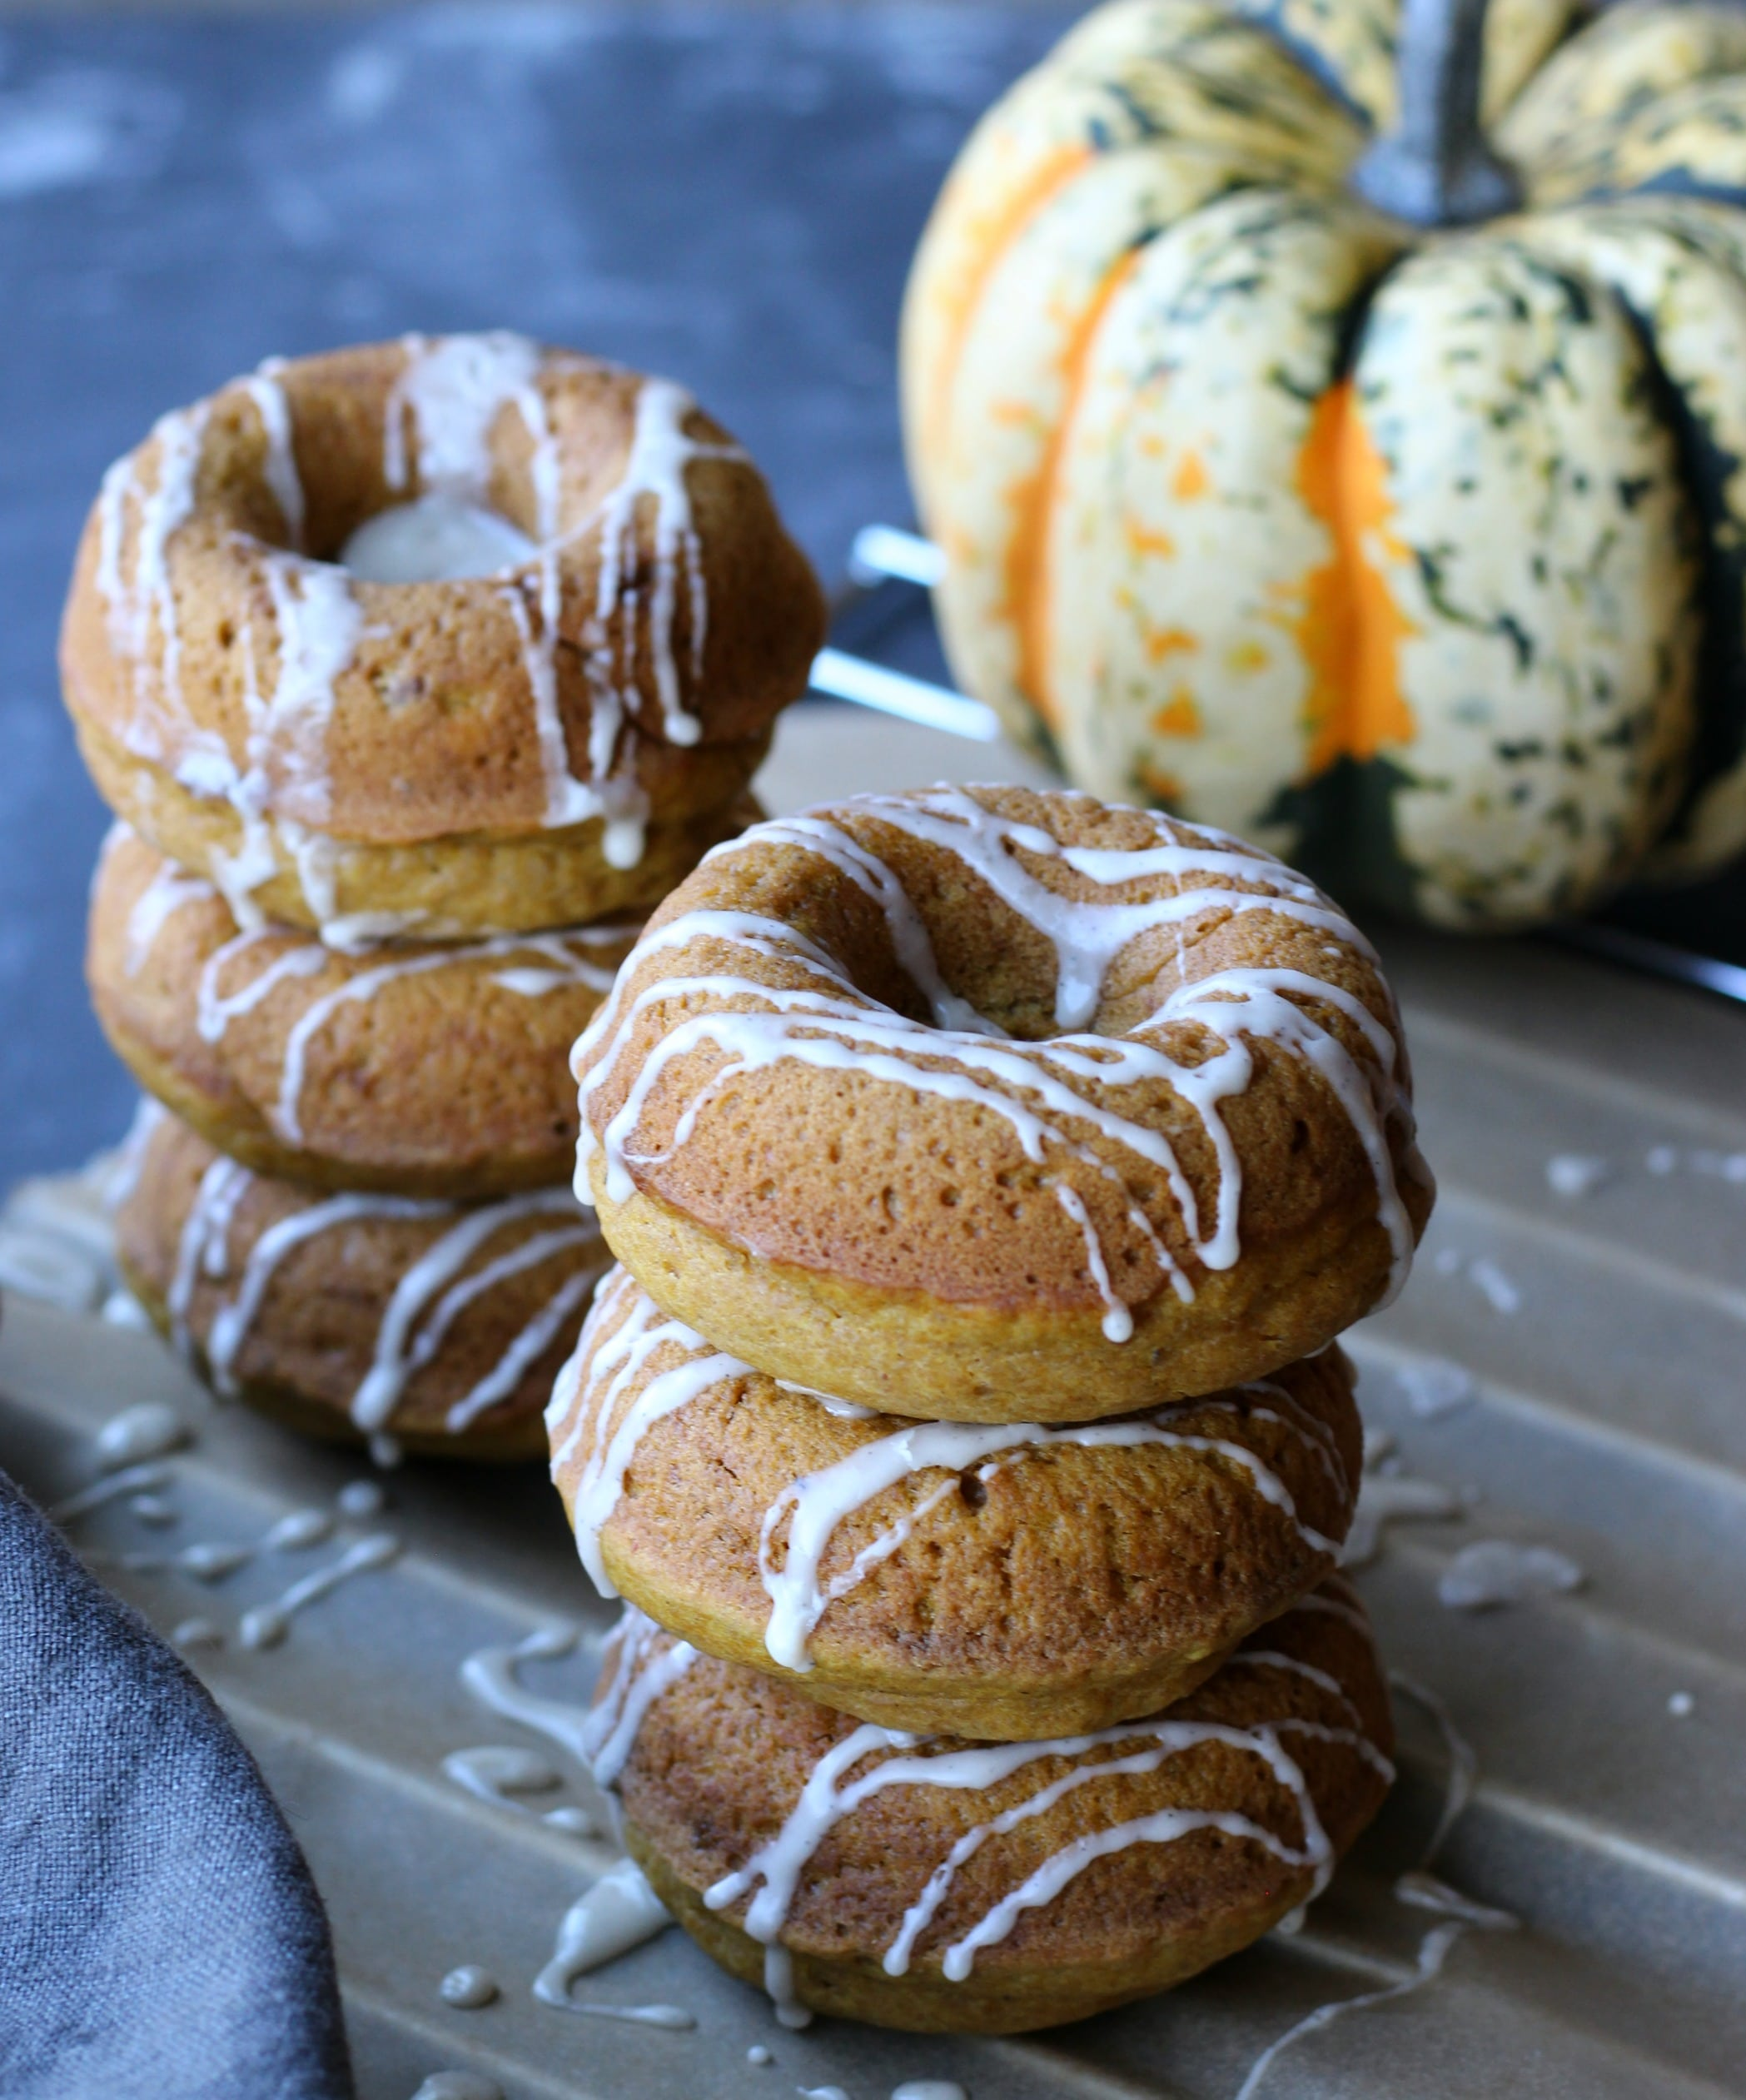 OMG These are the BEST Pumpkin Donuts on Earth! gardeninthekitchen.com